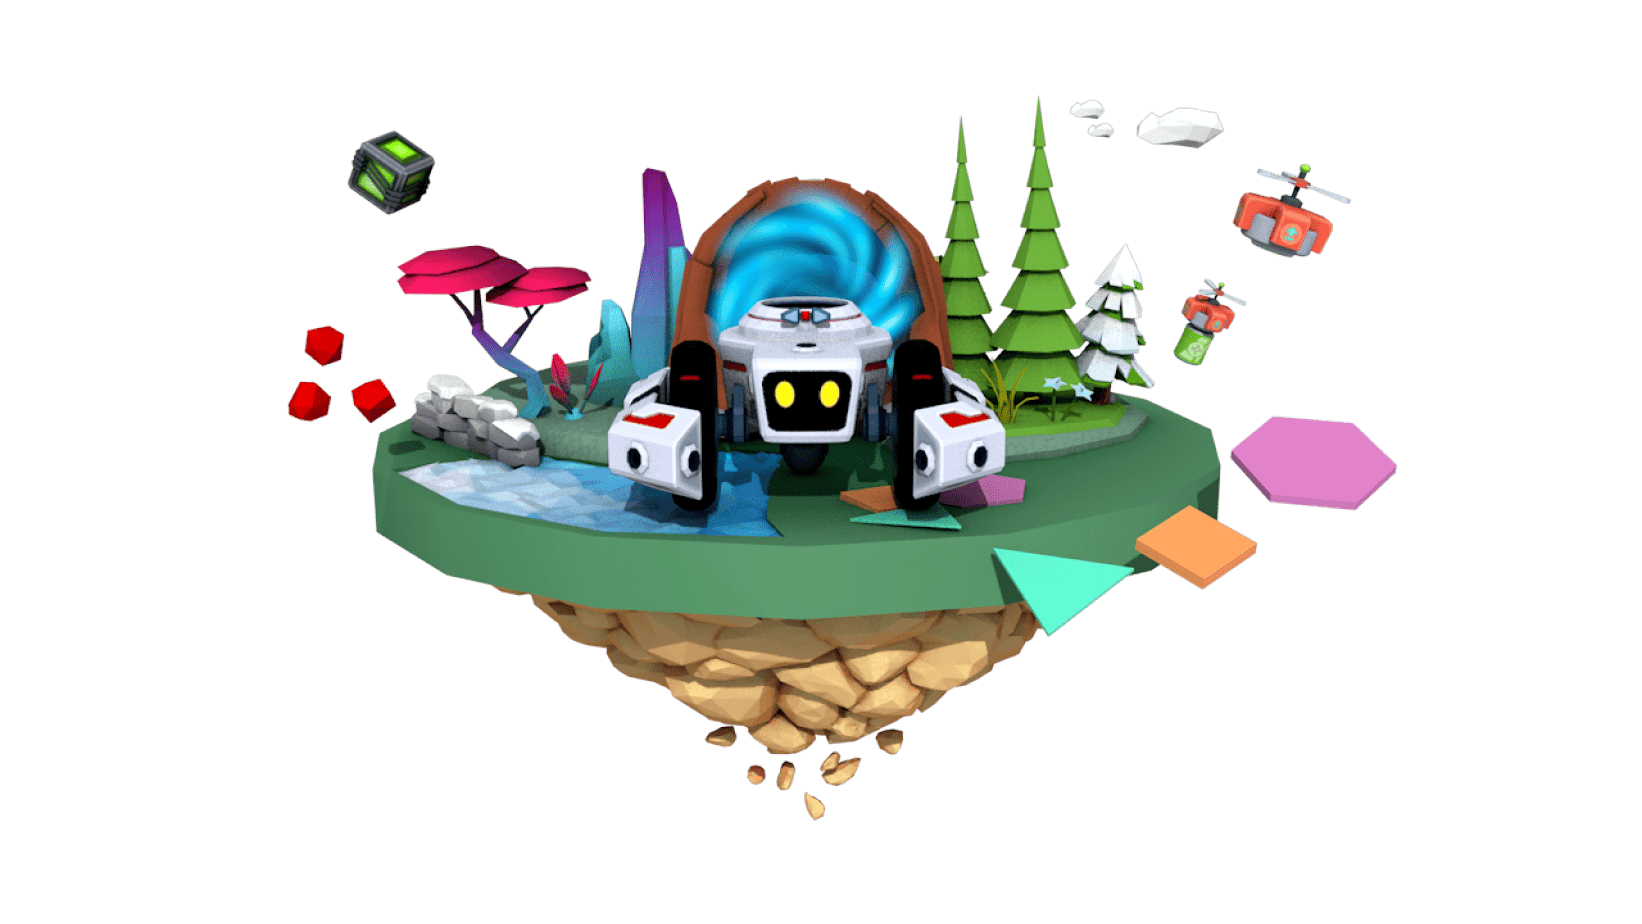 Frontal view of a virtual robot from the CoderZ gamified learning platform for coding and computer science